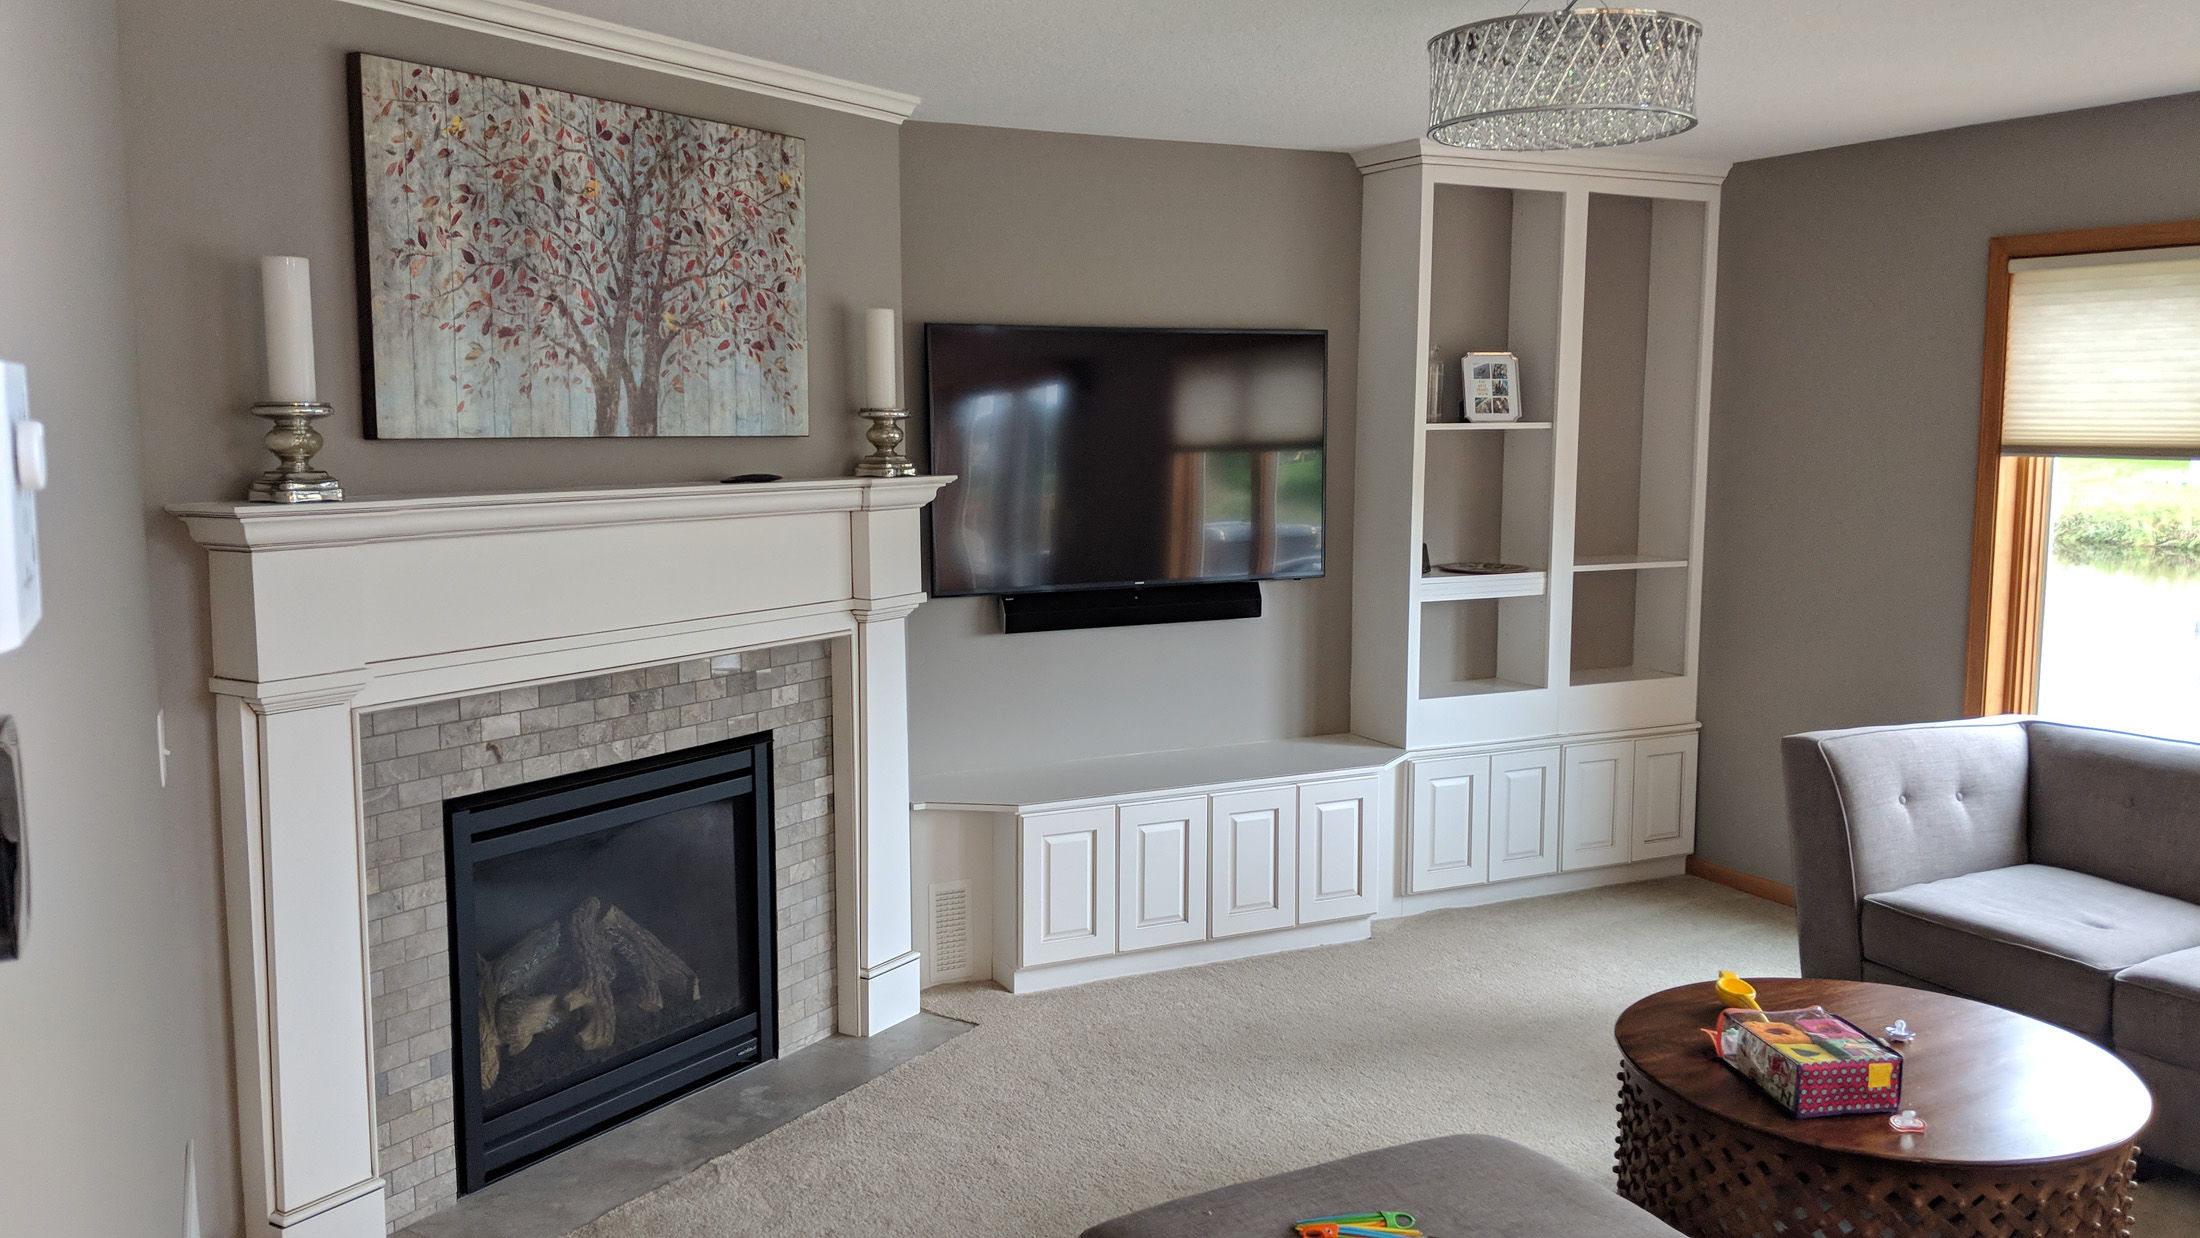 Angled fireplace with surround